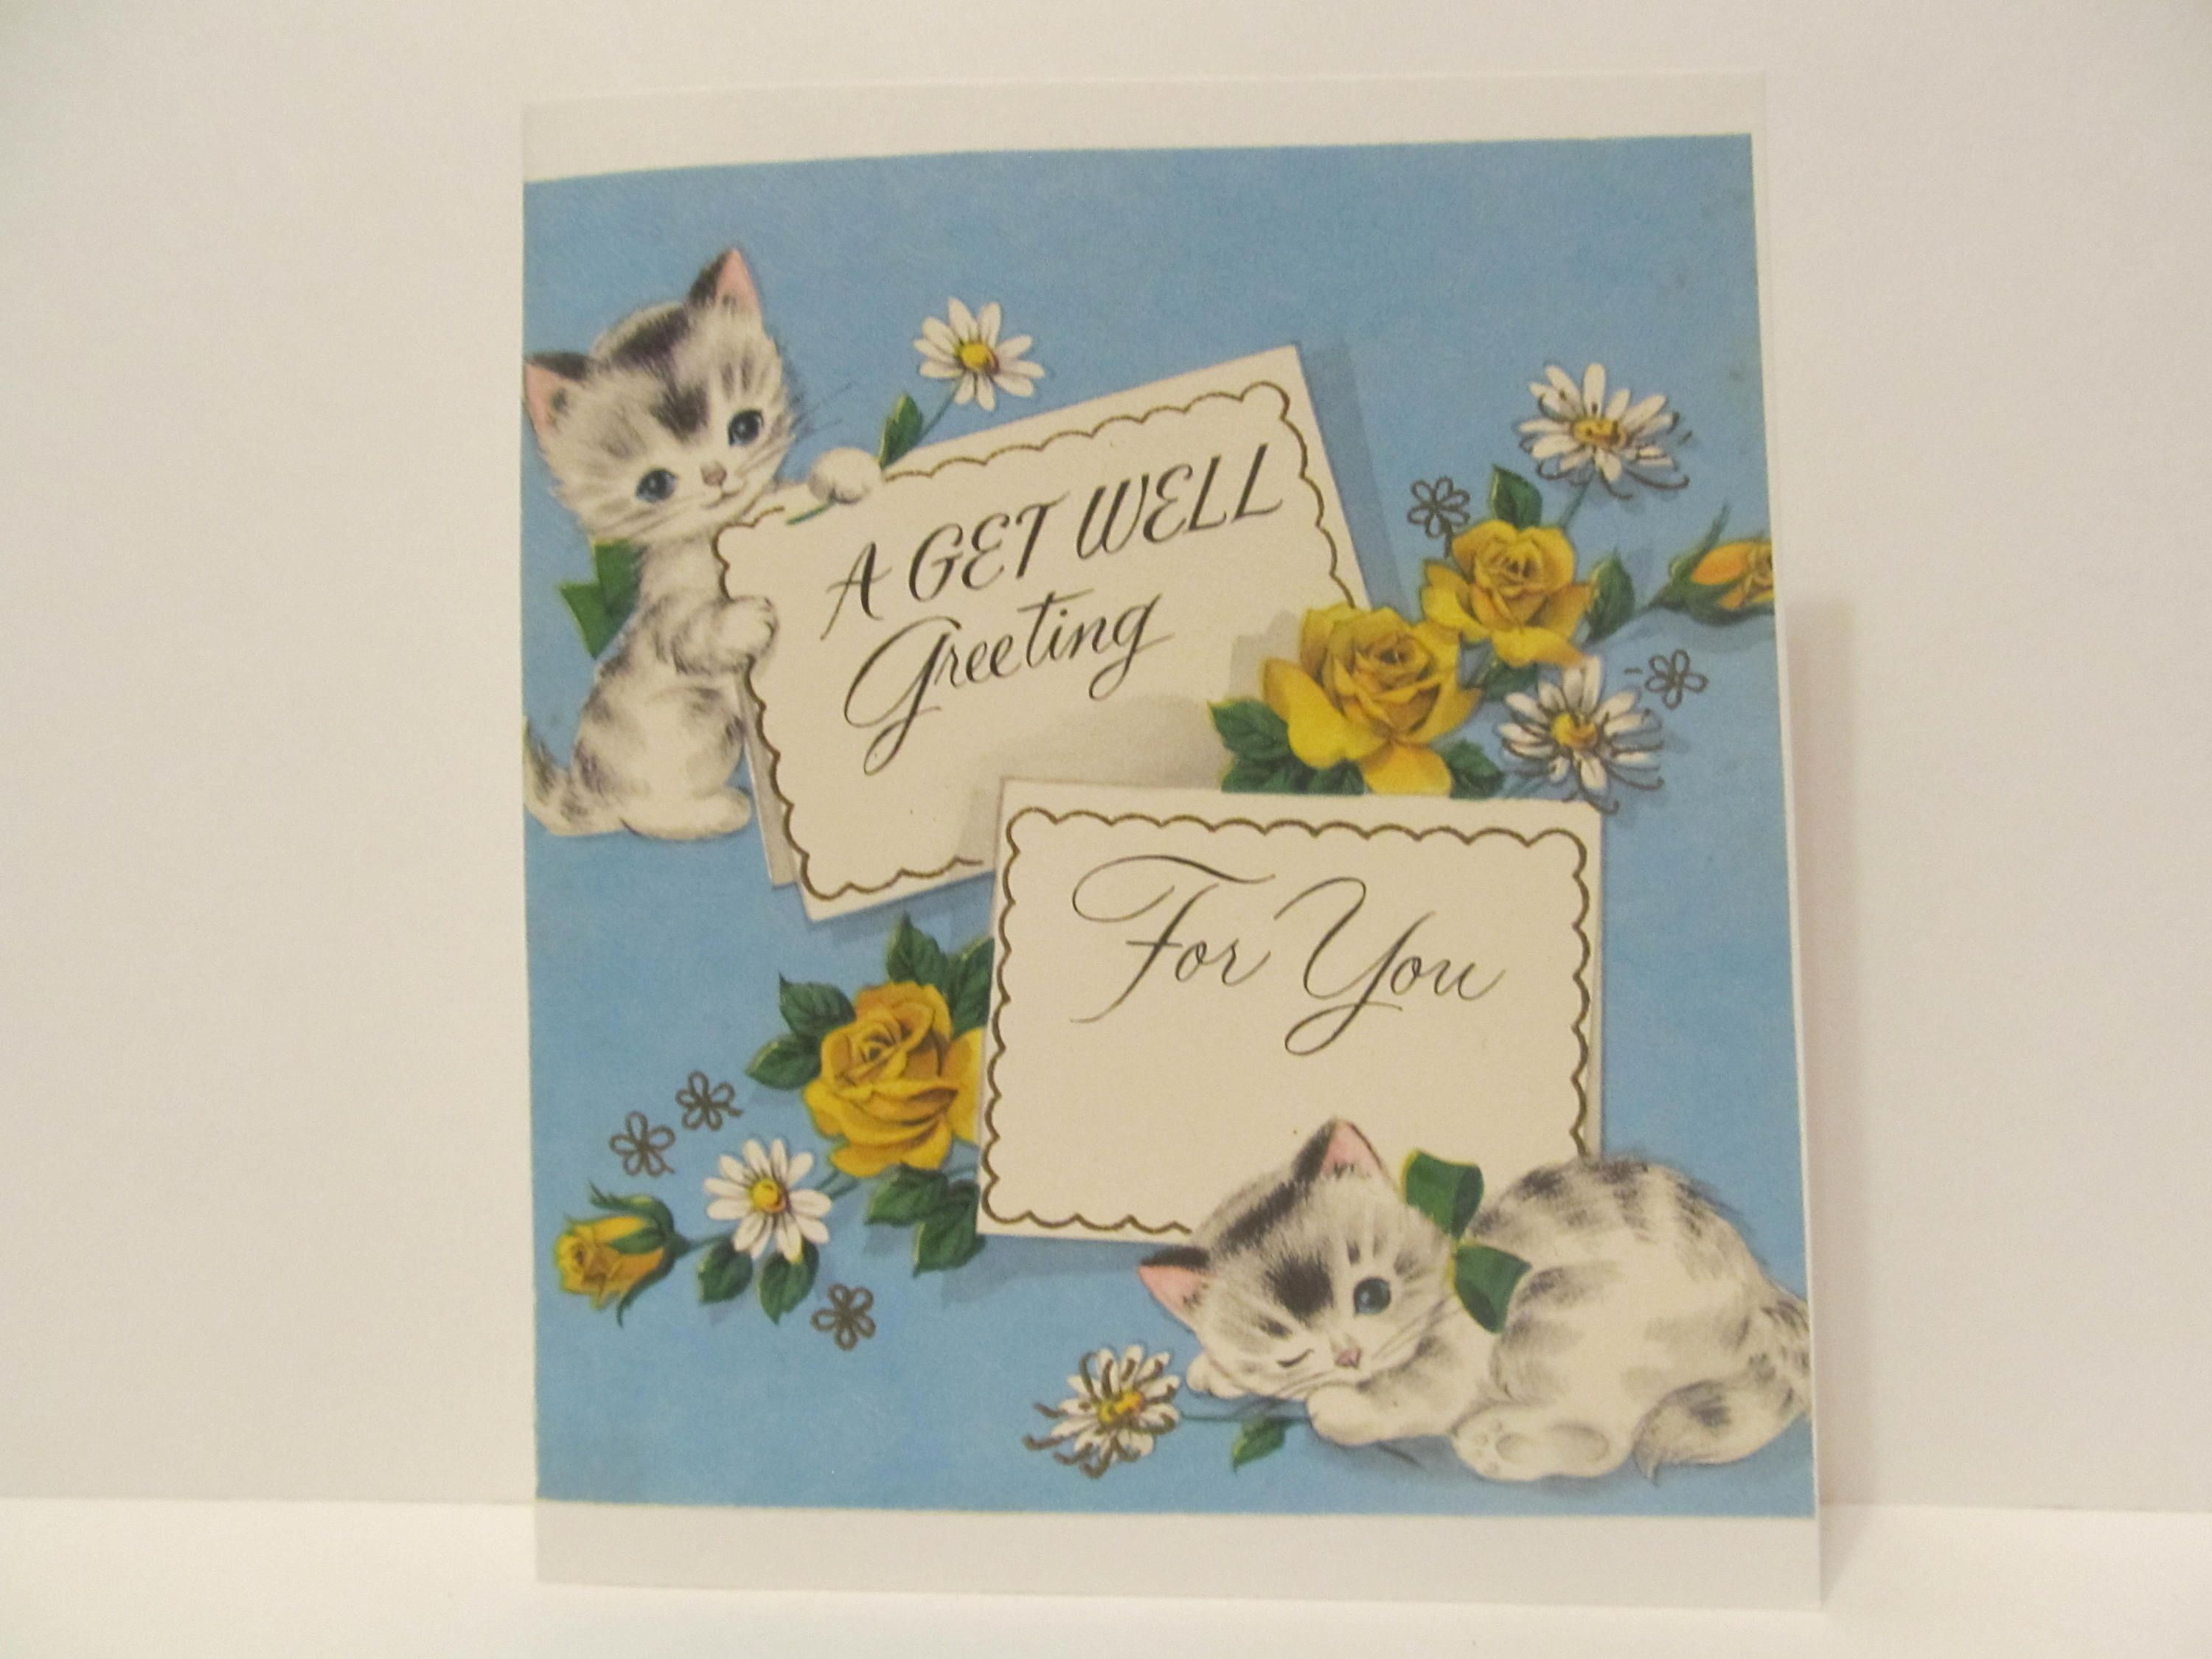 A Get Well Greeting For You Kitty Cat Kittens Cat Card Get Well